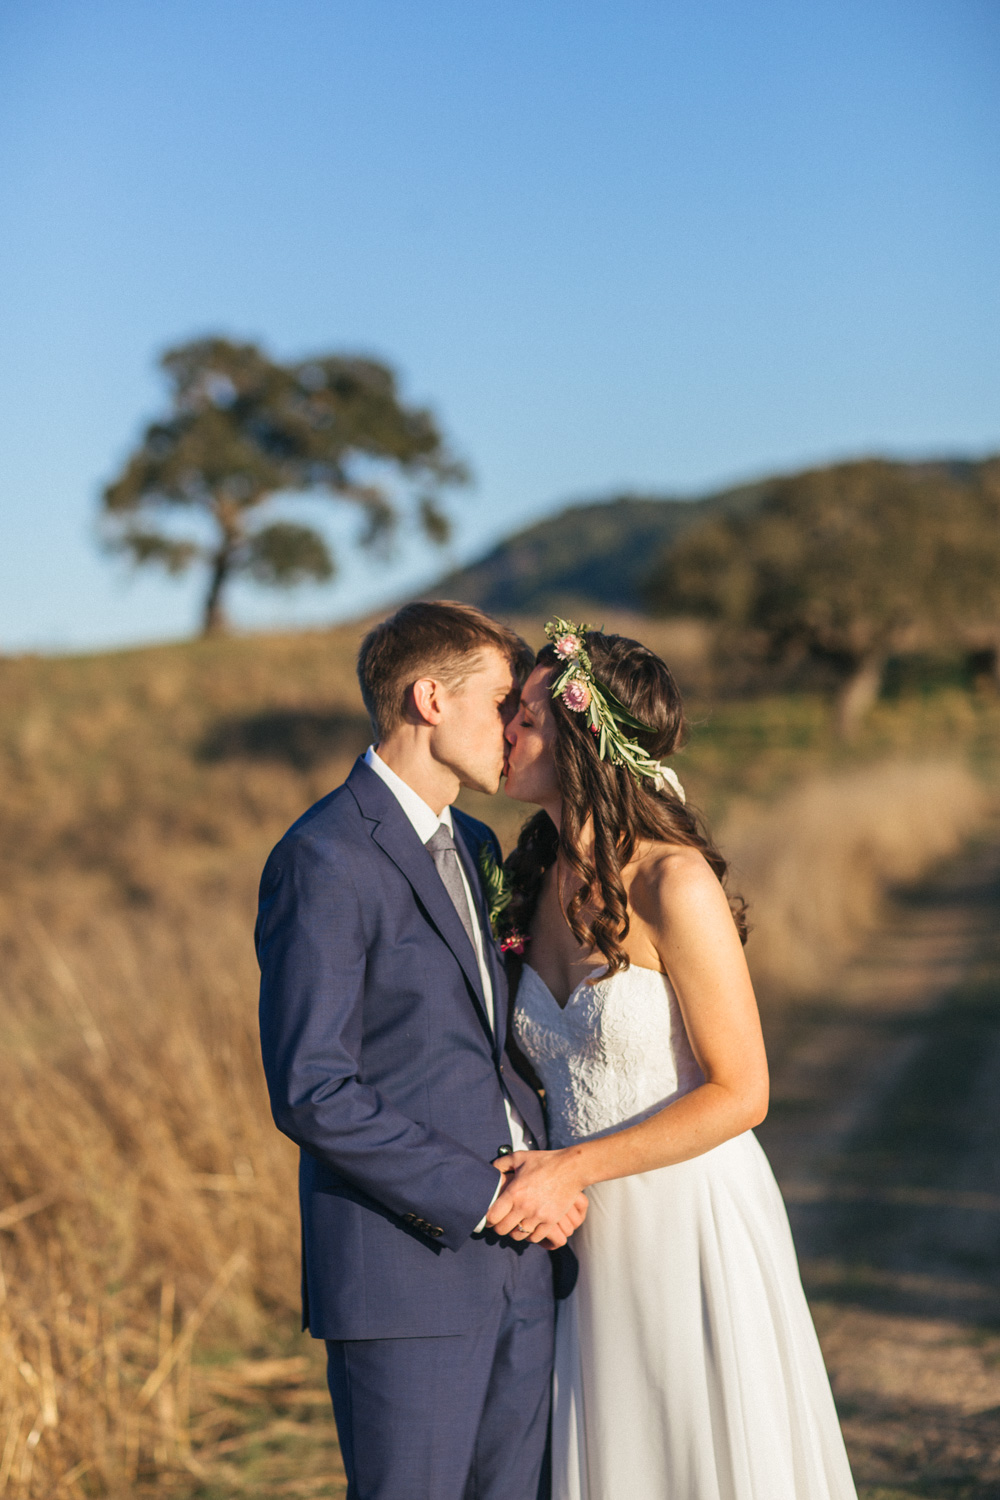 petaluma-sonoma-county-wedding-photographer-16.jpg